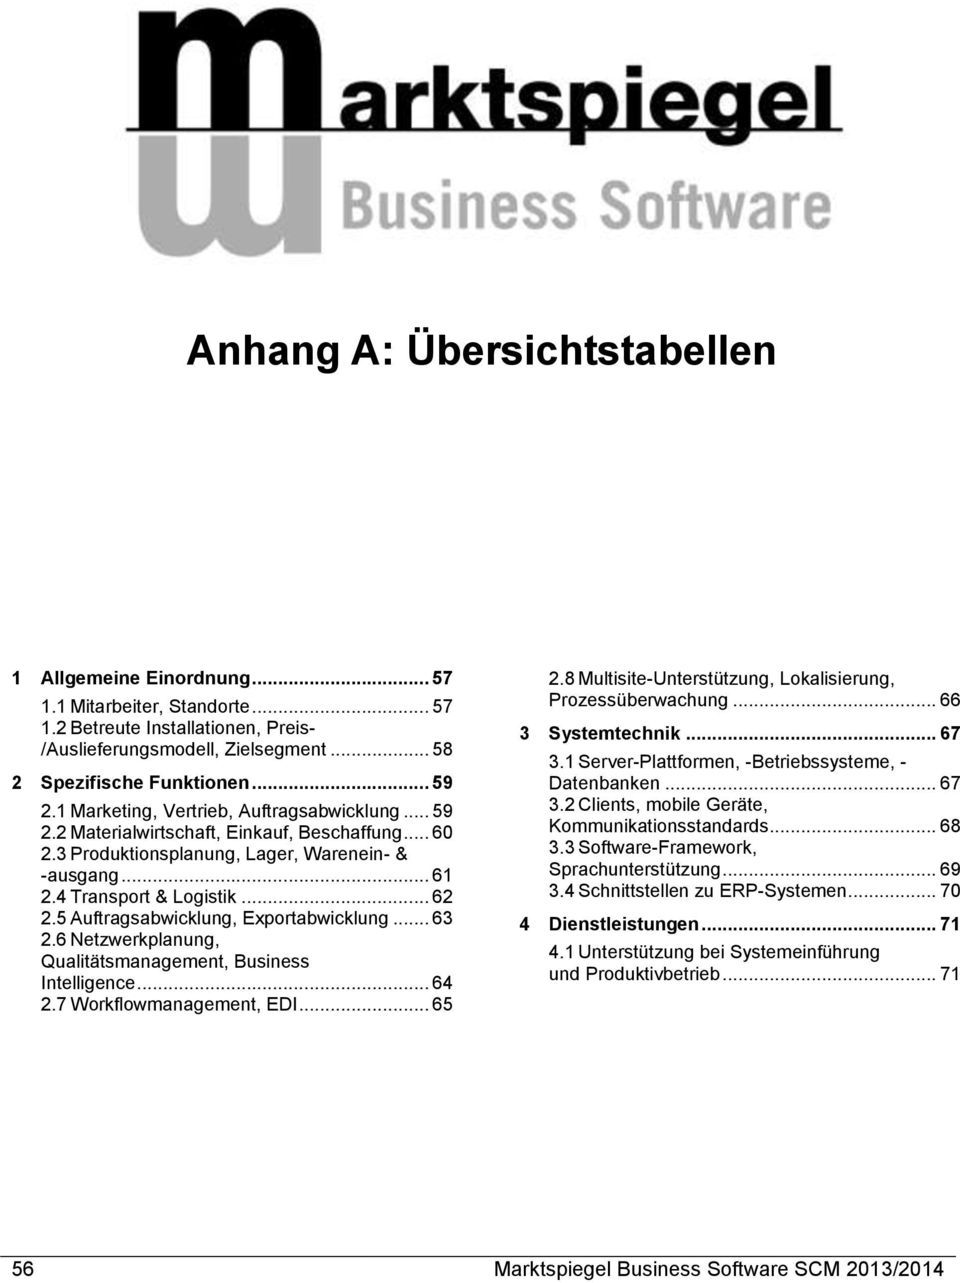 5 Auftragsabwicklung, Exportabwicklung... 63 2.6 Netzwerkplanung, Qualitätsmanagement, Business Intelligence... 64 2.7 Workflowmanagement, EDI... 65 2.